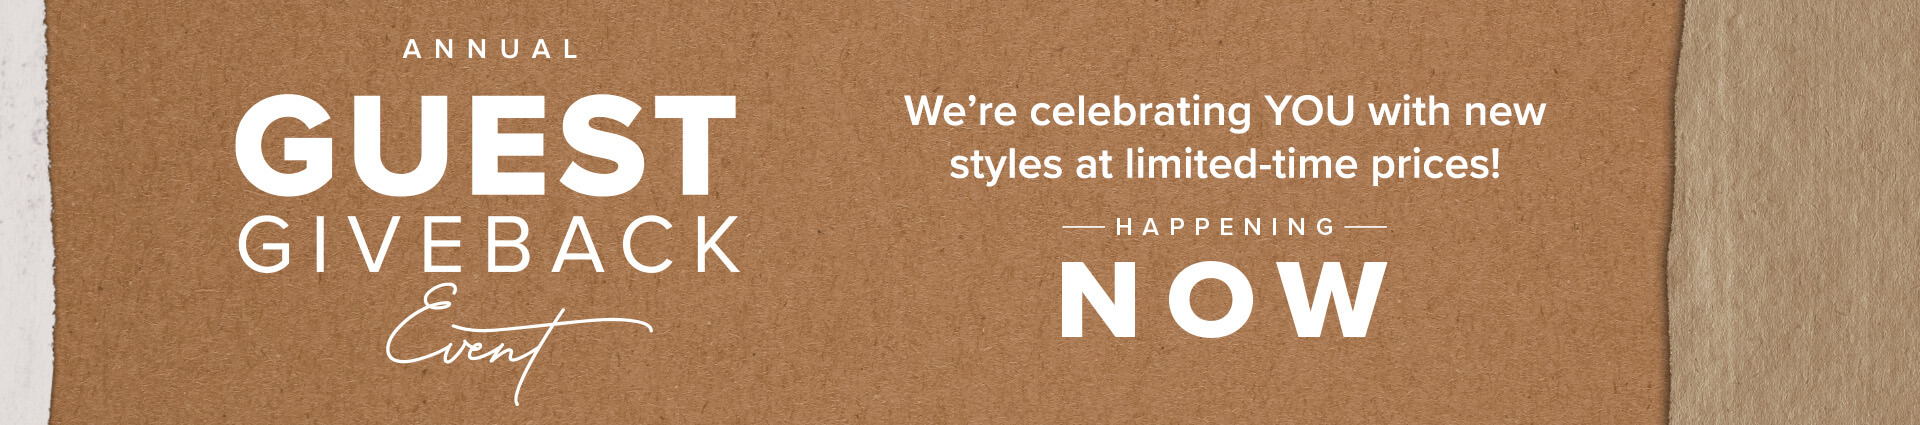 Annual Guest Giveback Event - We're celebrating you with new styles at limited-time prices! Happening now!